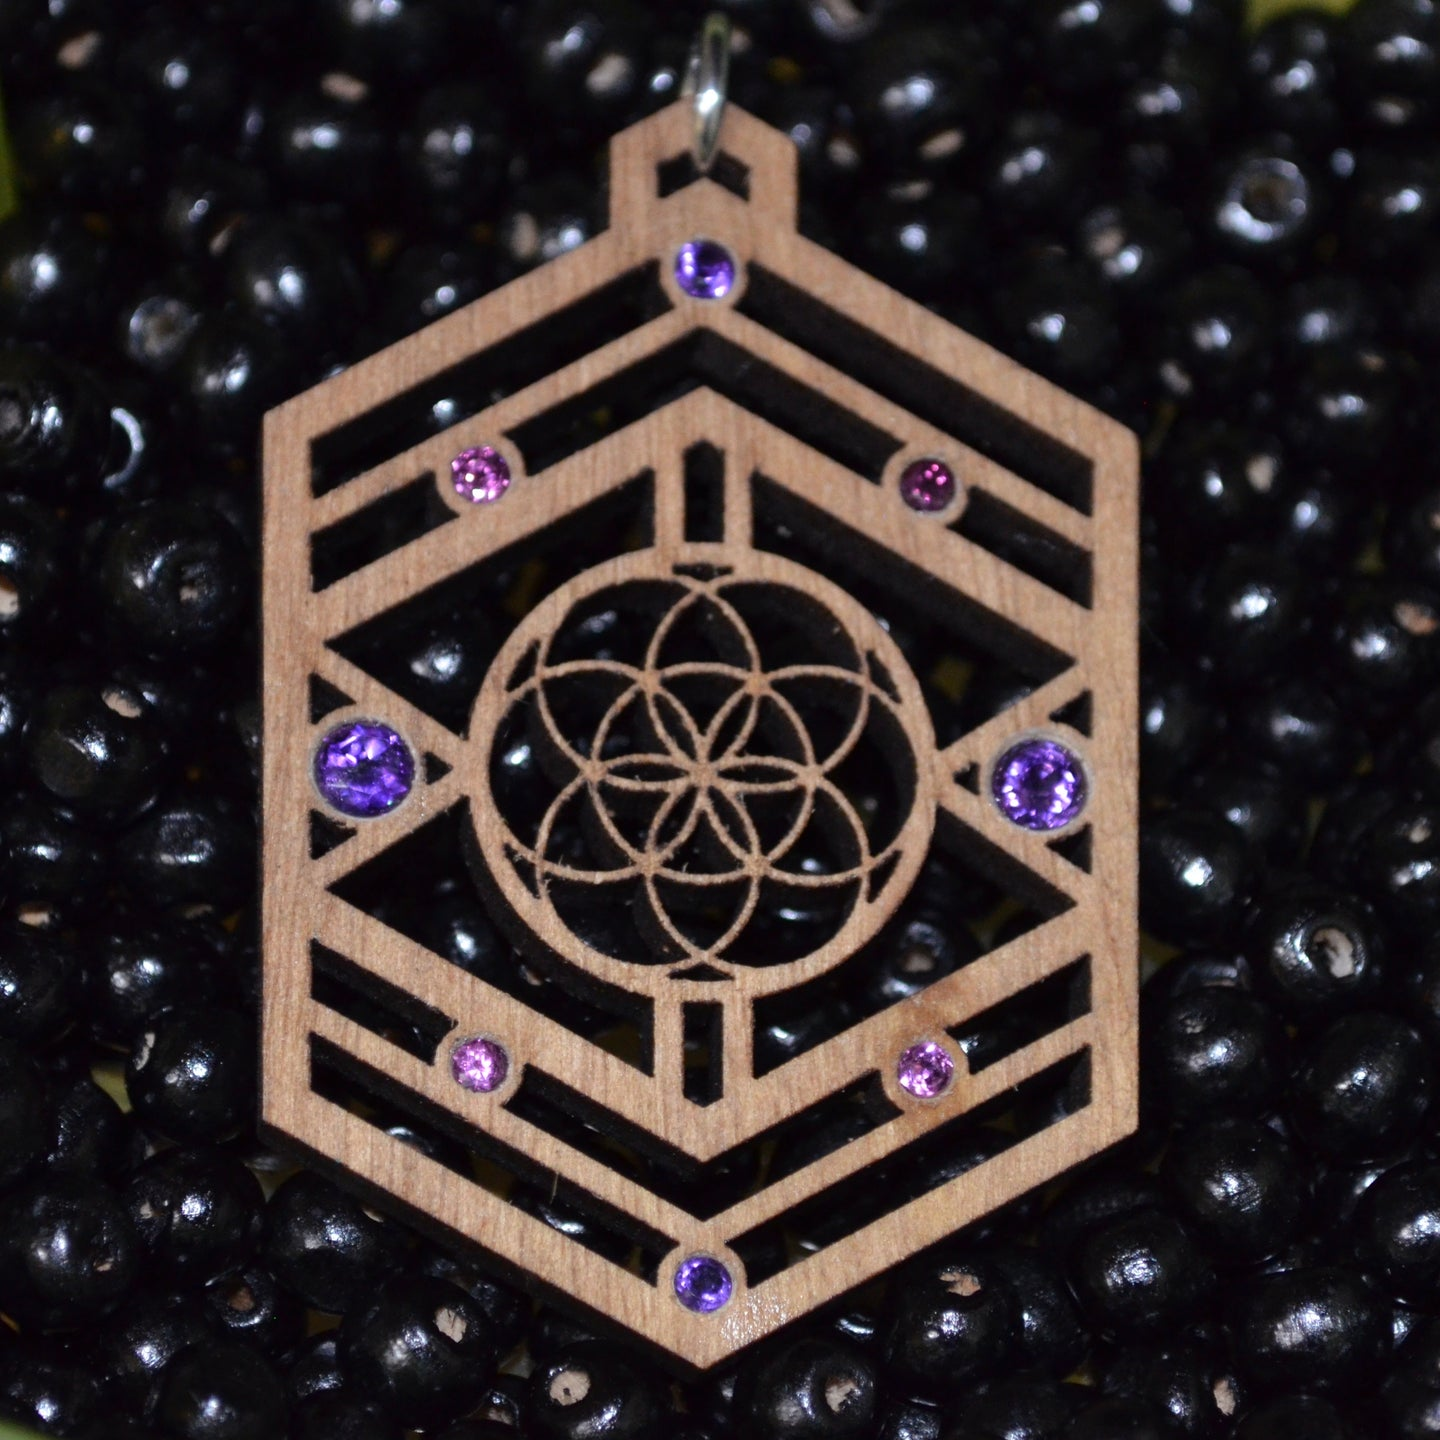 ***Sold Out*** Seed Shield 4x Amethyst 4x Rhodolite Garnet Gemlord Space Cruiser Pendant